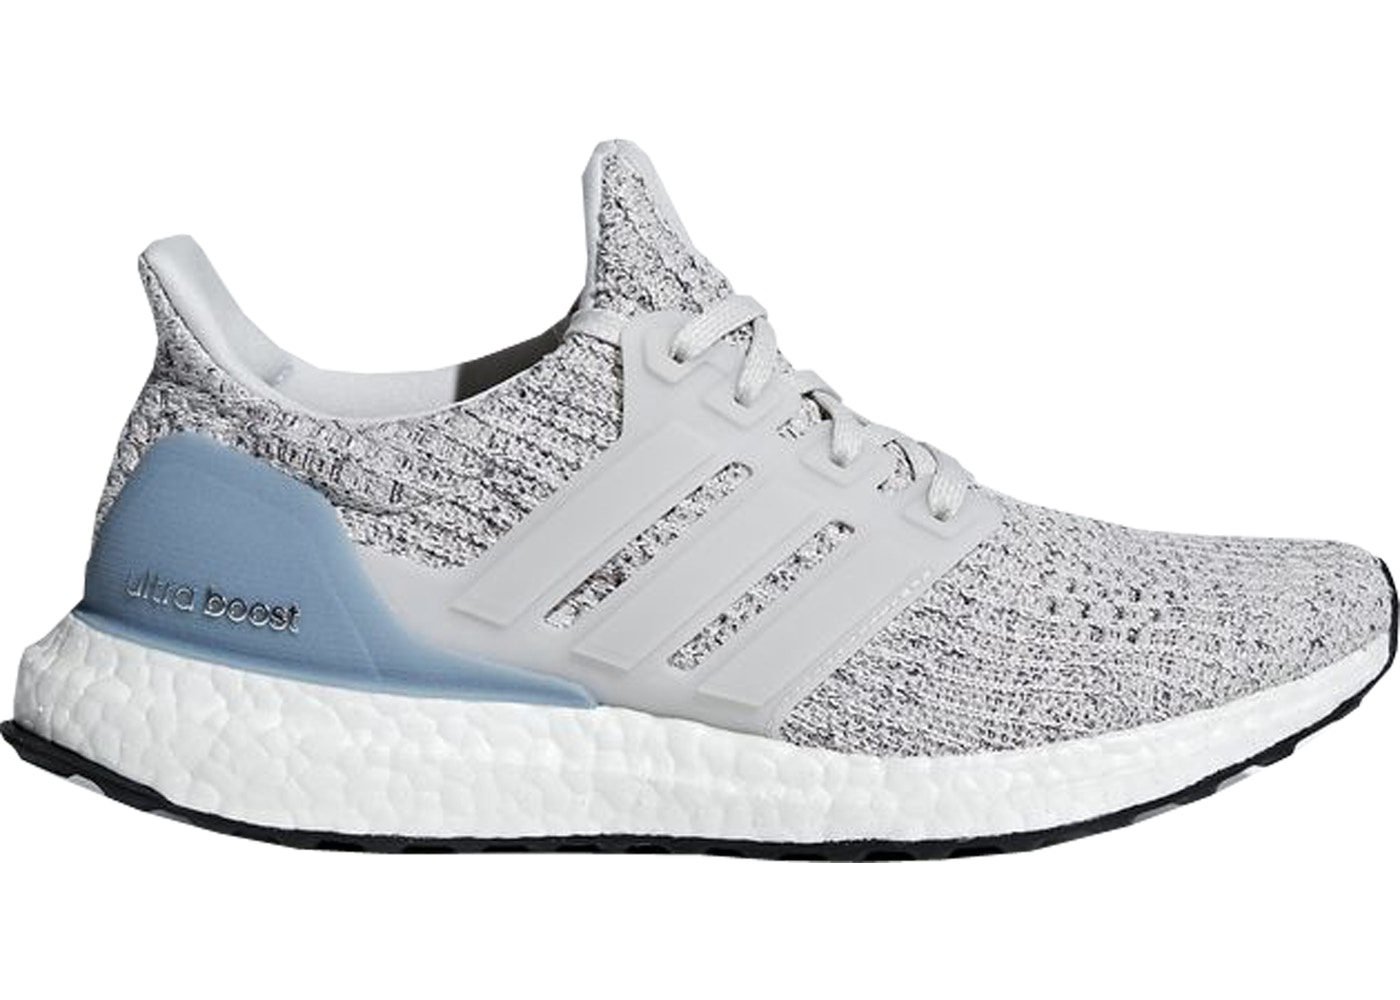 9bbfa912 adidas Ultra Boost Shoes - New Lowest Asks